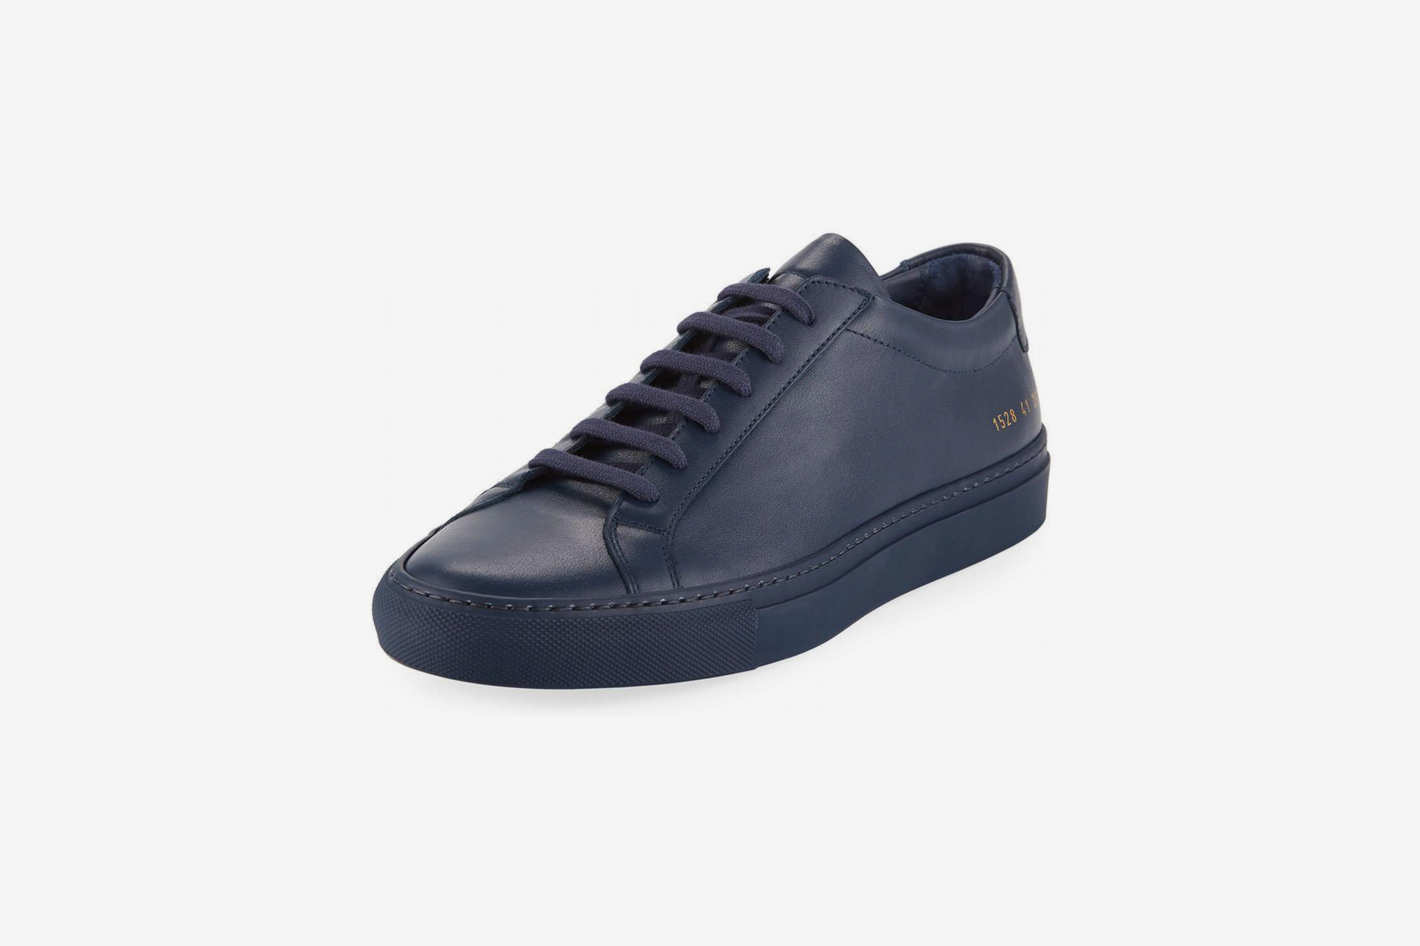 7c4dfda682a5 Common Projects Achilles Grained Leather Sneakers. ""